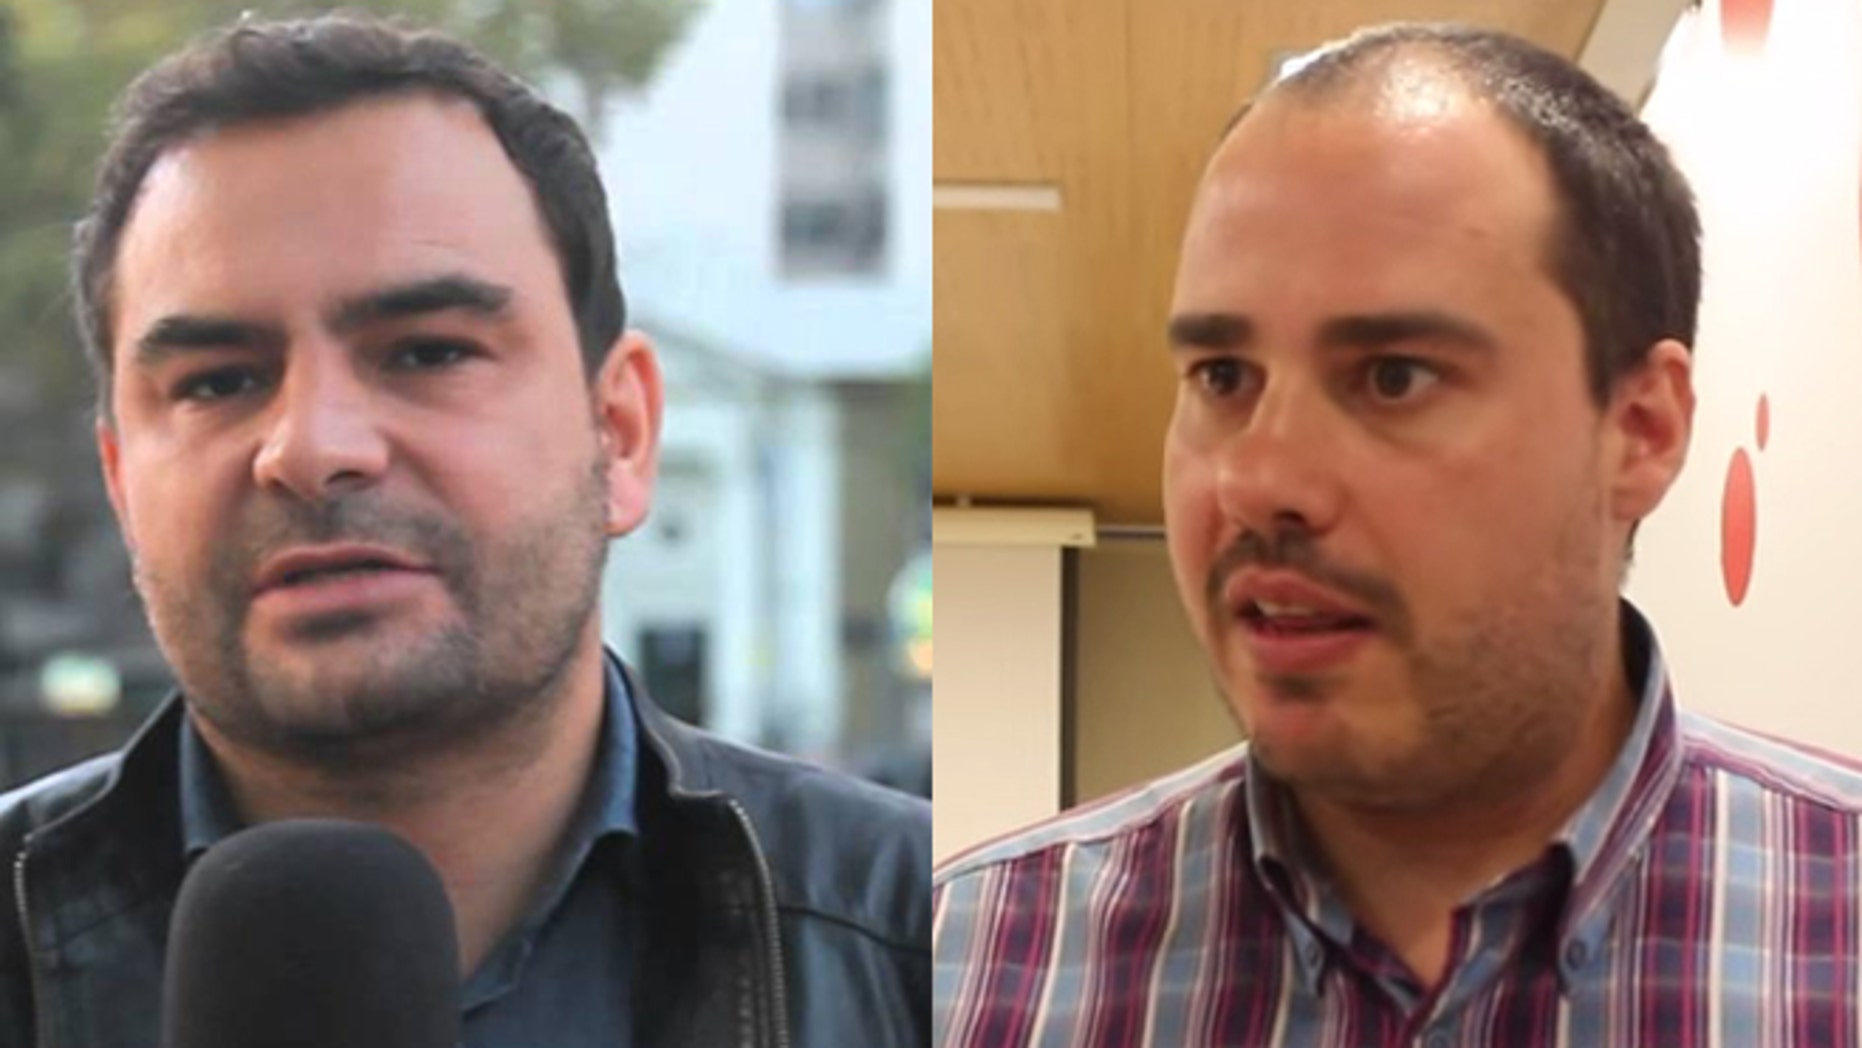 A photo composite of Angel Sastre (R) and Antonio Pampliega (L), two of the three Spanish journalists kidnapped in Aleppo, Syria.